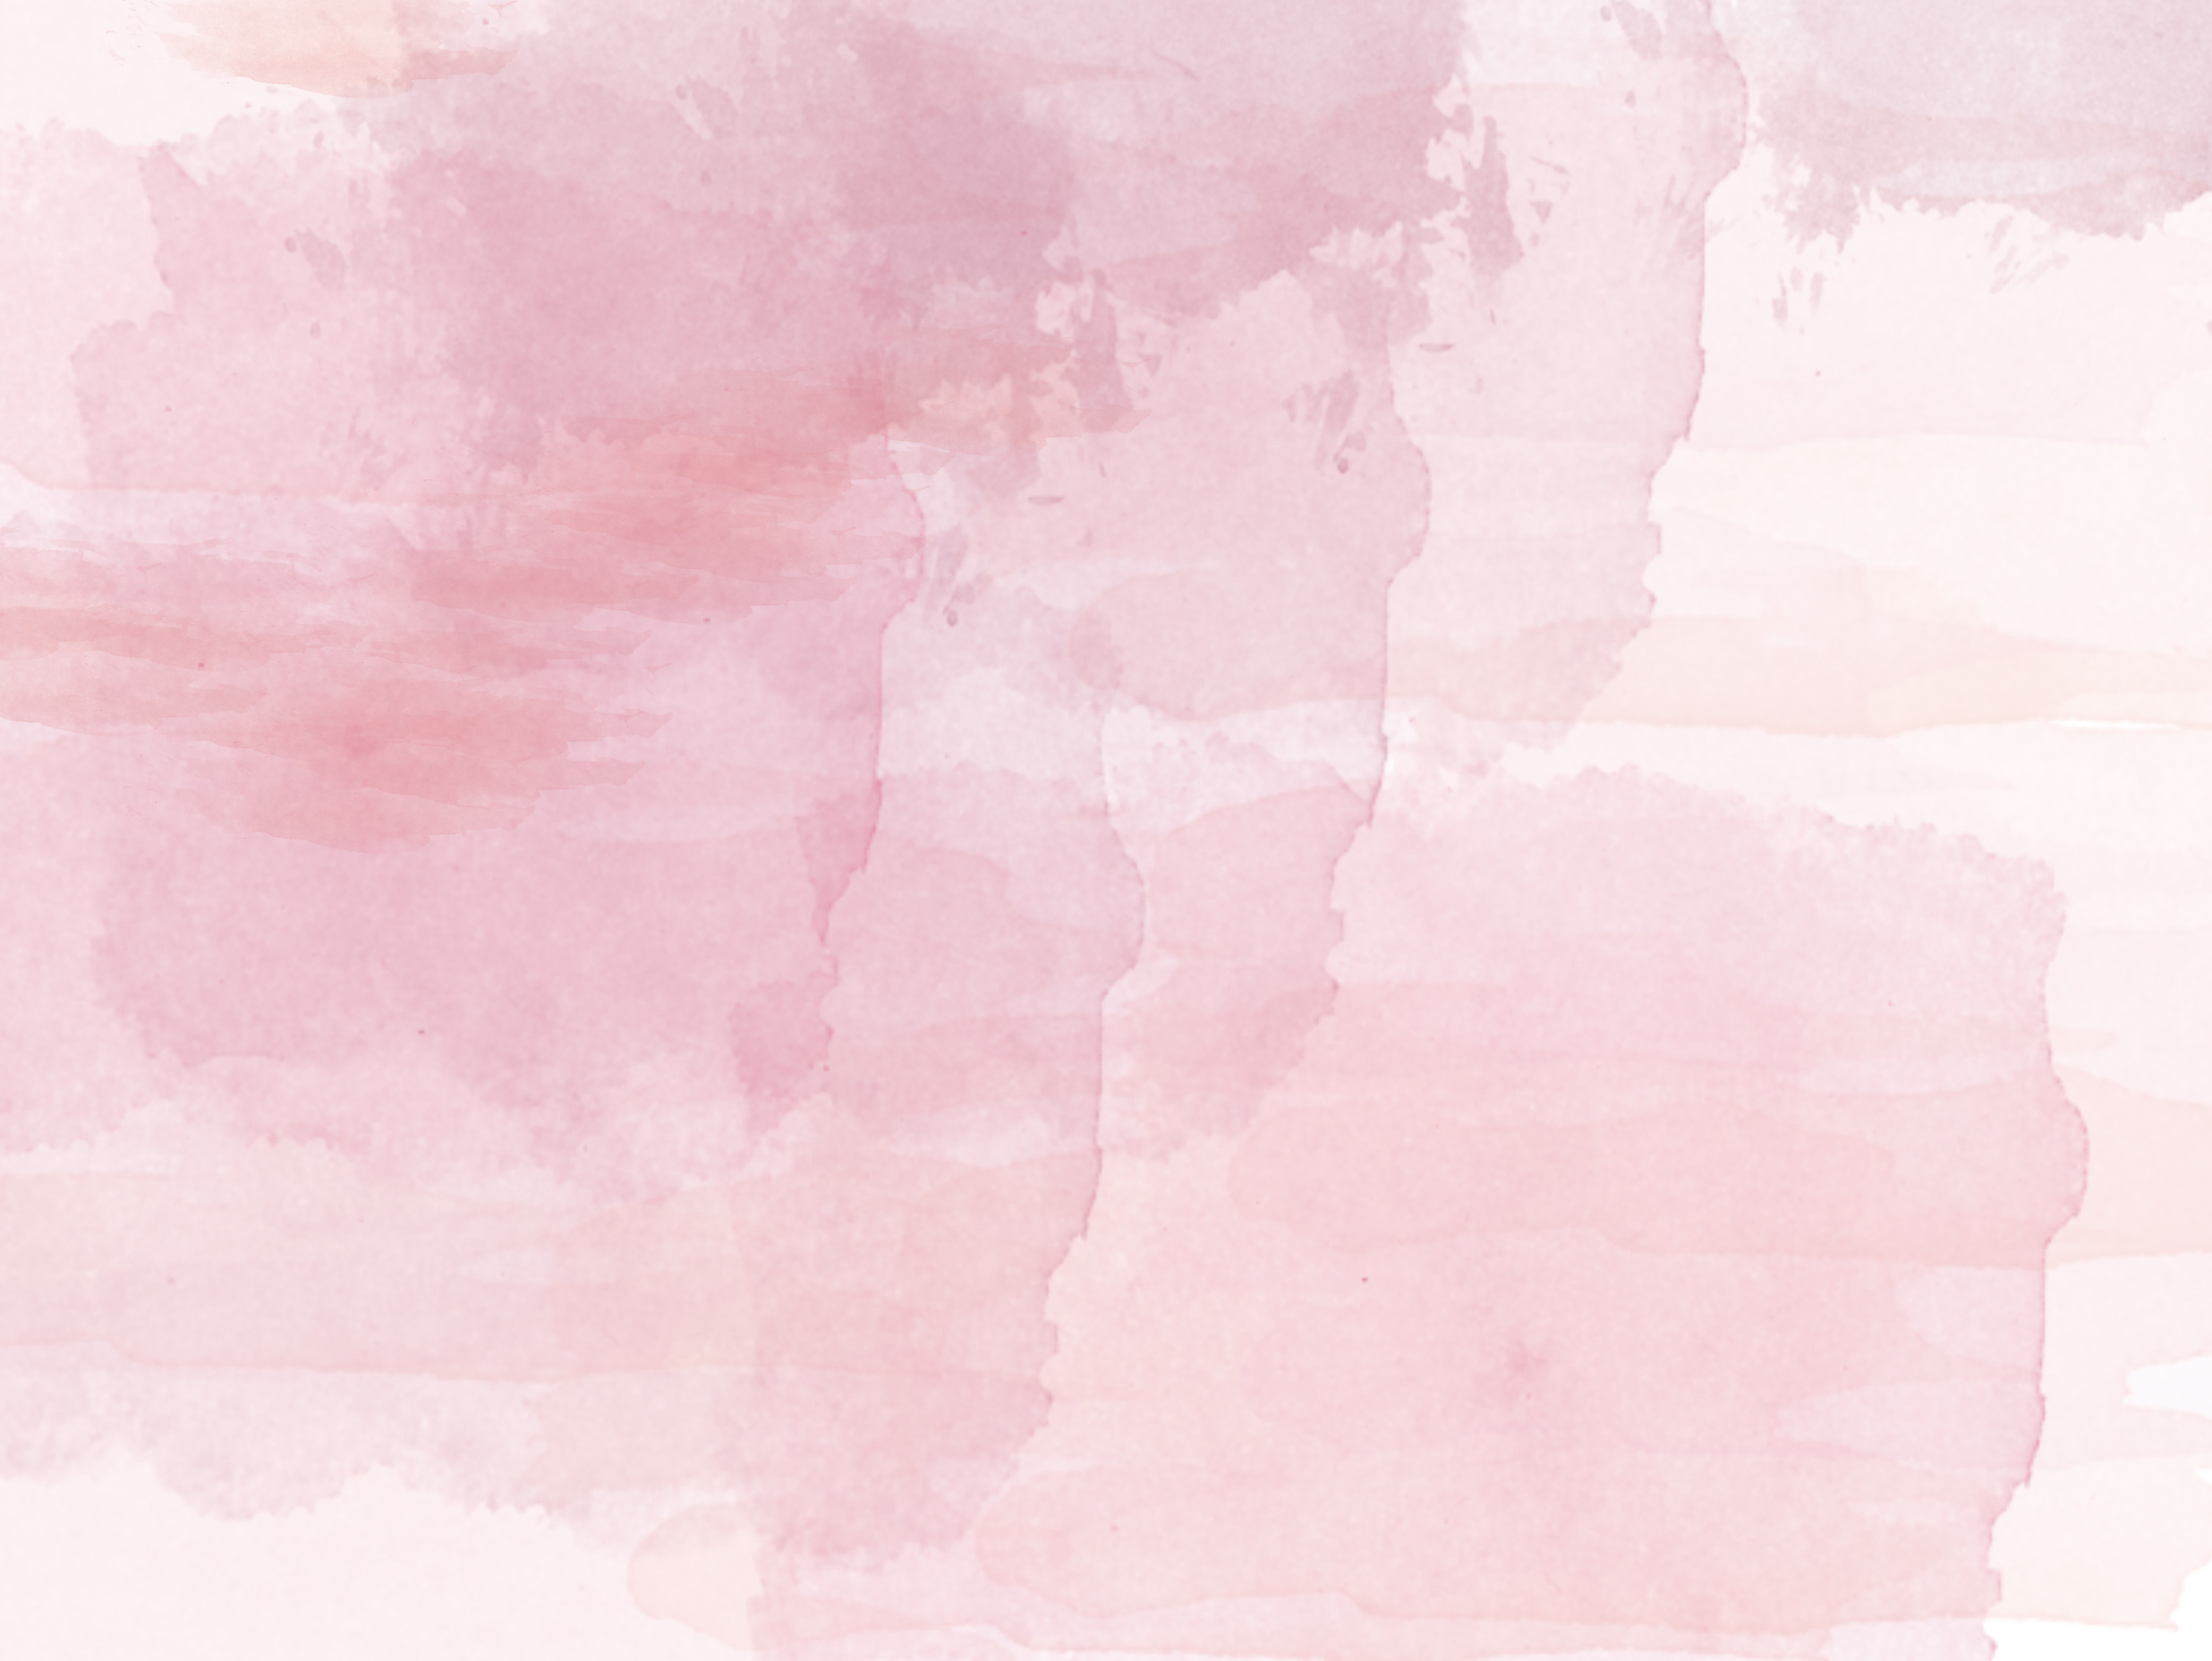 watercolor wallpaper related keywords suggestions